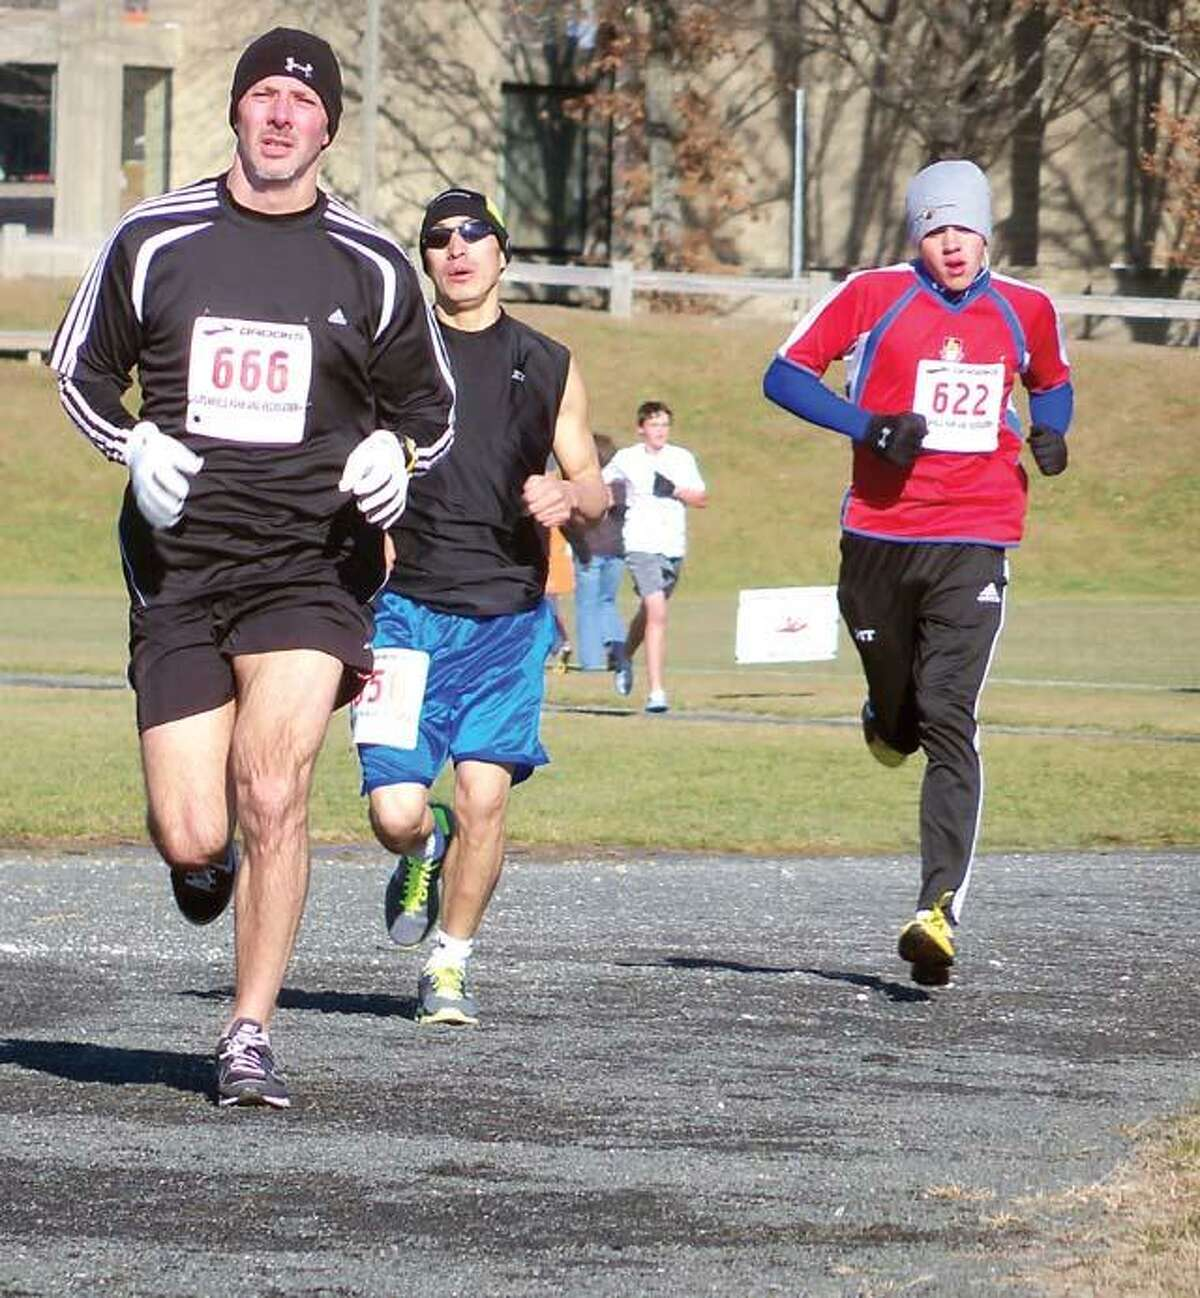 RICKY CAMPBELL/ Register CitizenRunners battling the cold and the wind at the 28th year of the Jingle Bell Run on Dec. 4.